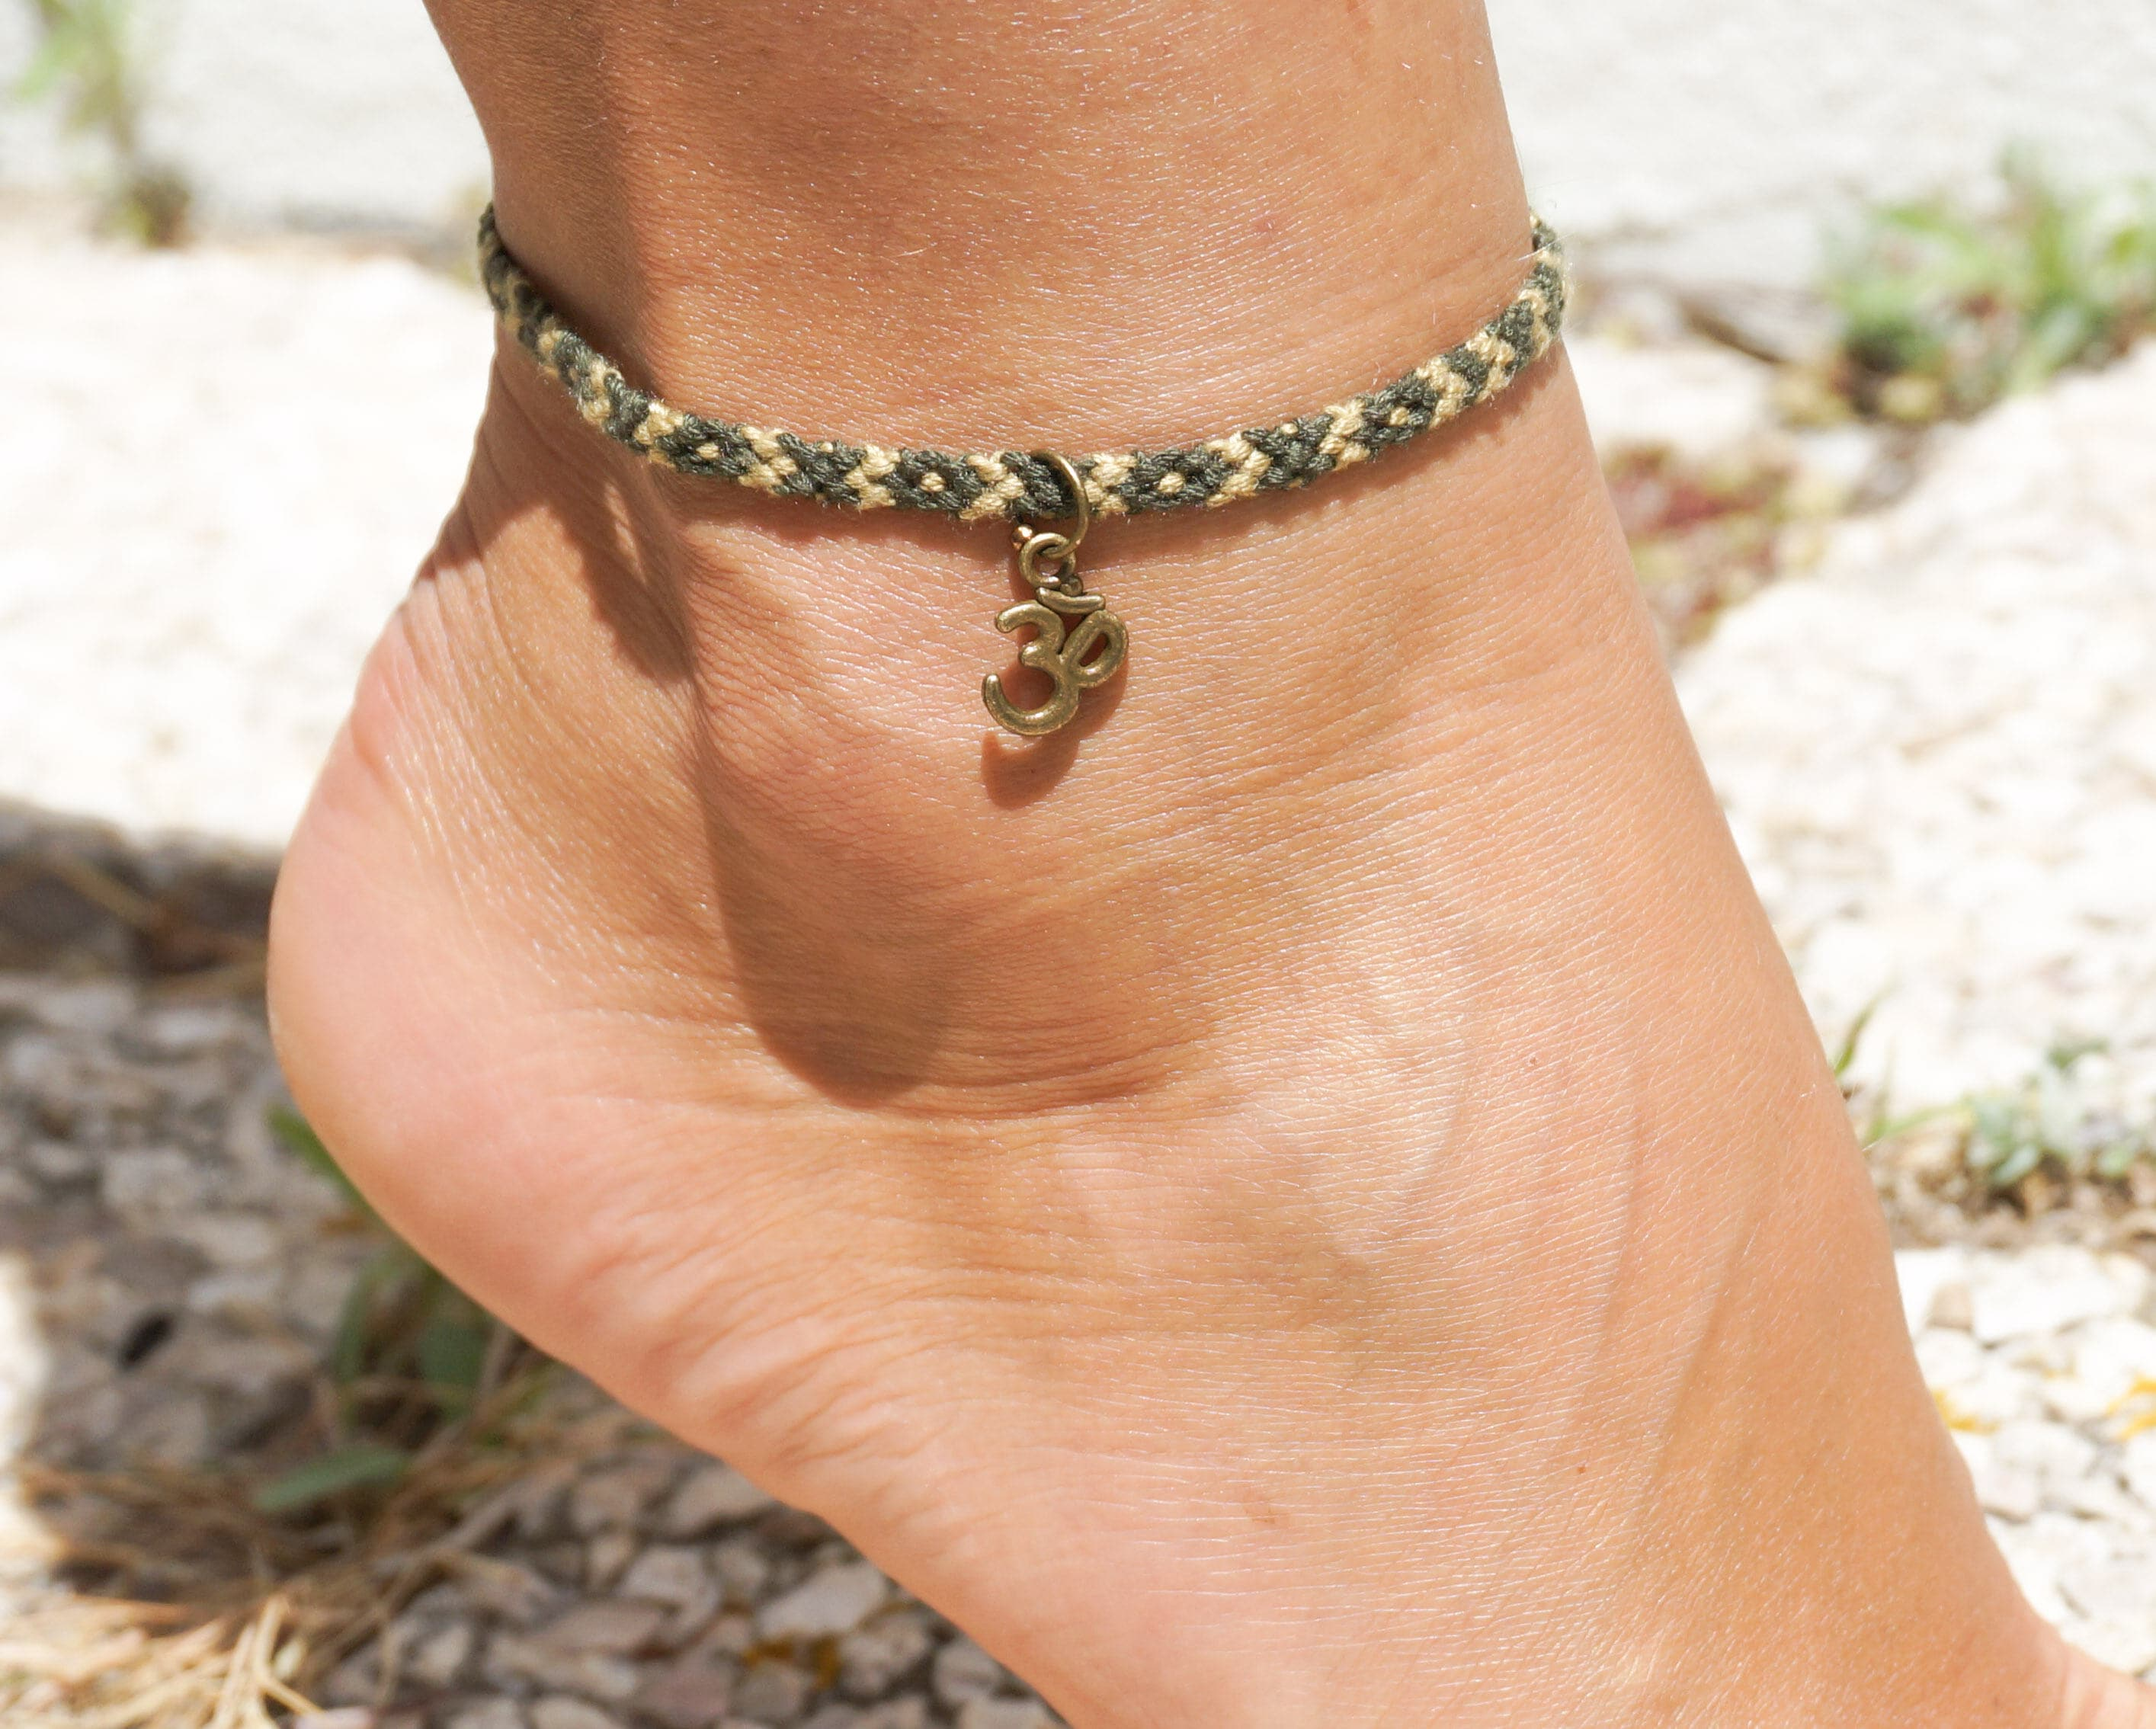 anklet sizes bracelets handmade rose sideways matching religious all gold dp com cross men plate amazon ankle bracelet spiritual women